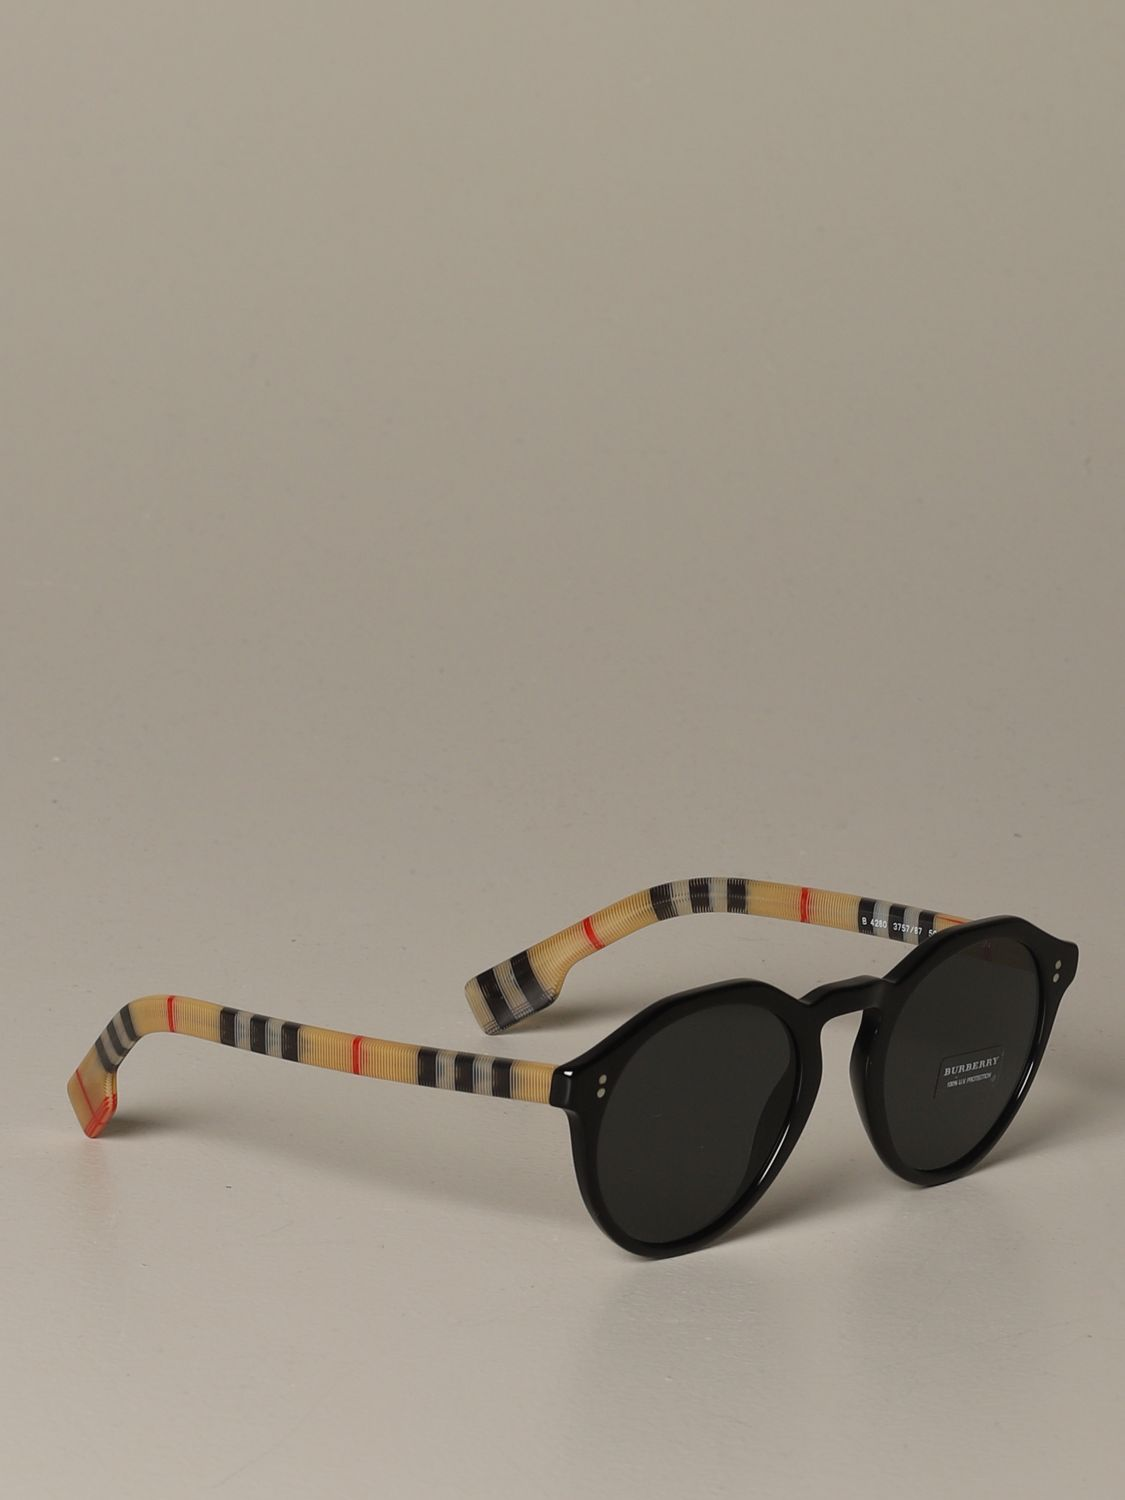 Glasses Burberry: Blake Burberry sunglasses with check temples black 1